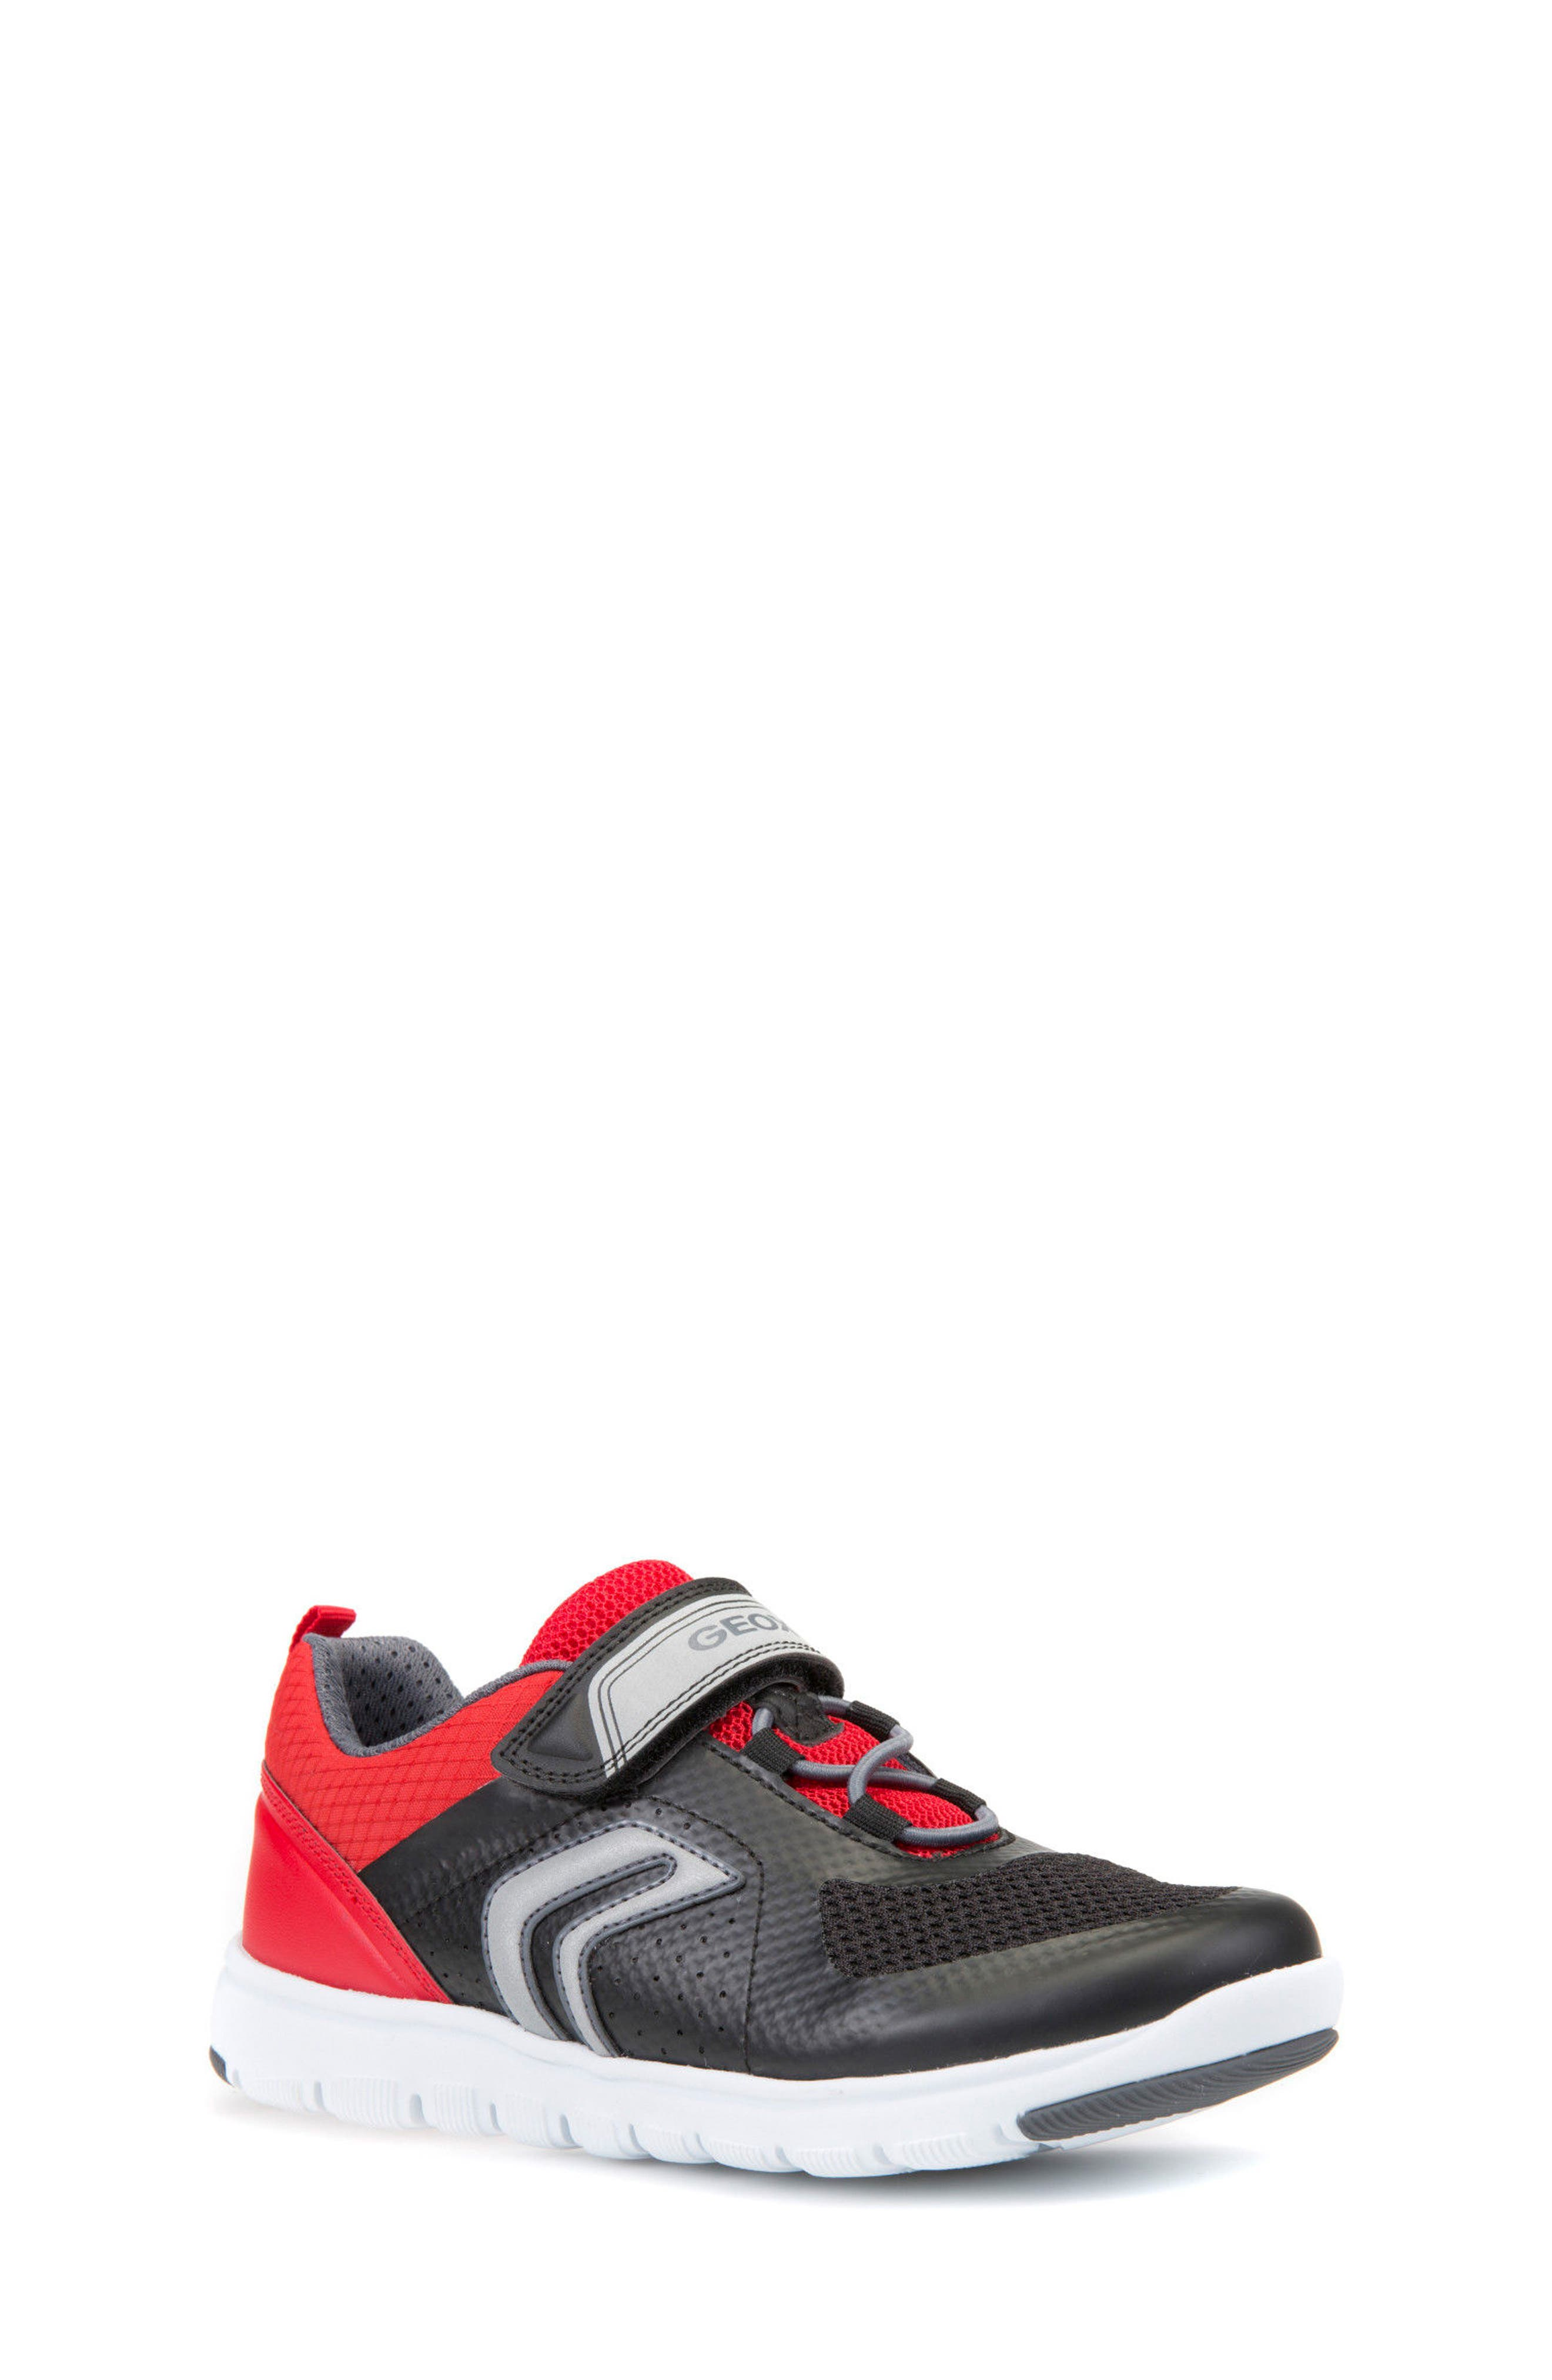 Xunday Low Top Sneaker,                         Main,                         color, Black/ Red